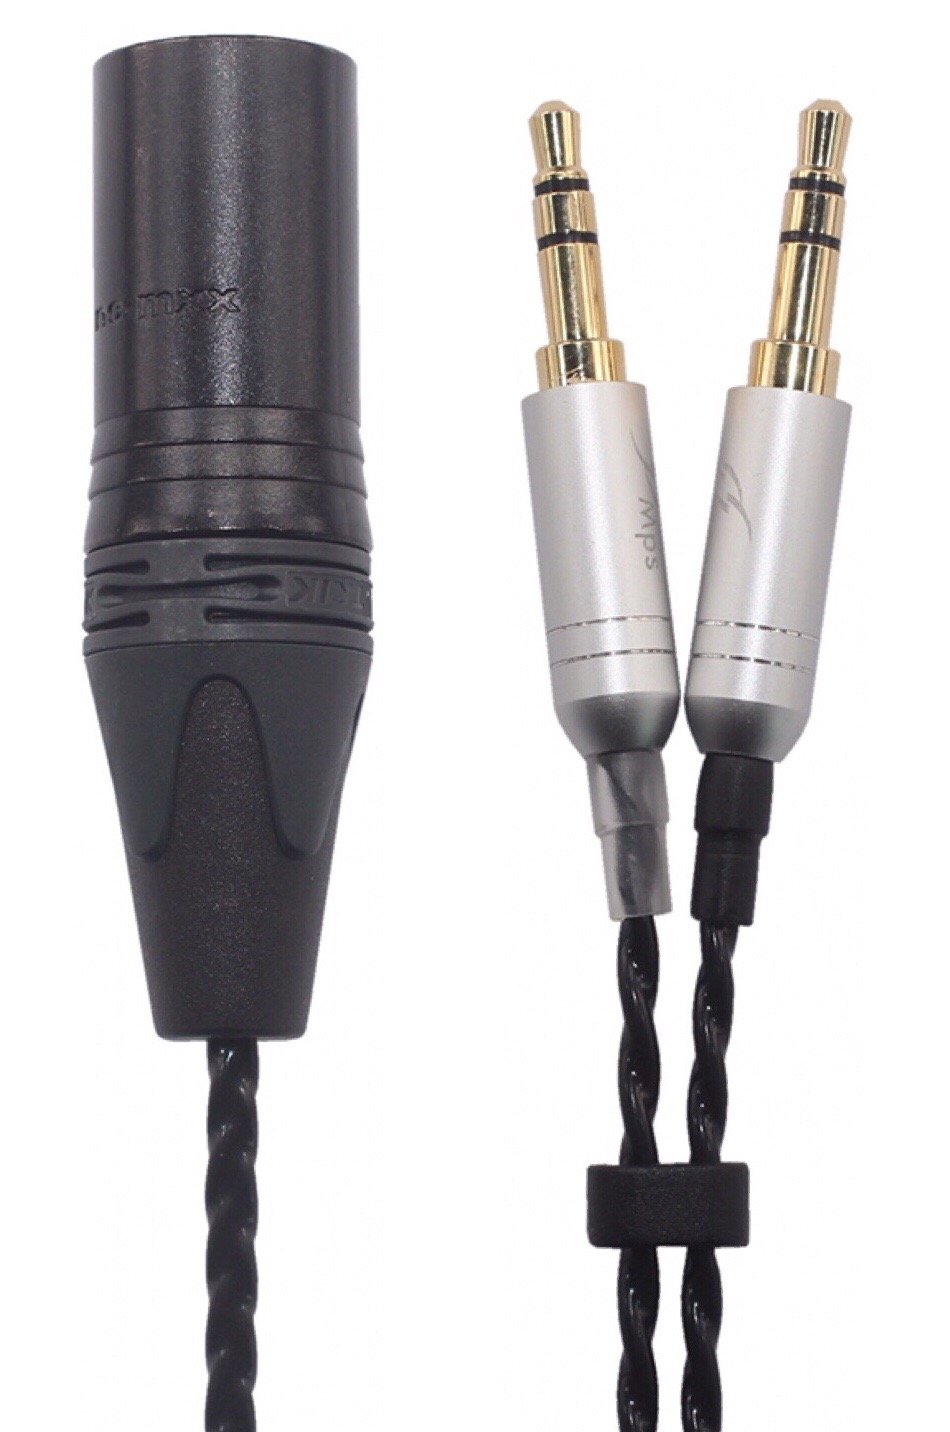 MDS-4P Beyerdynamic T1 II, T5 Headphone Replacement Earphone Cable, Upgrade Audio Cable, 4-pin XLR Balanced Male to Dual 3.5mm Connector, MDS-4P (4.9ft (1.5M)) by KK Cable